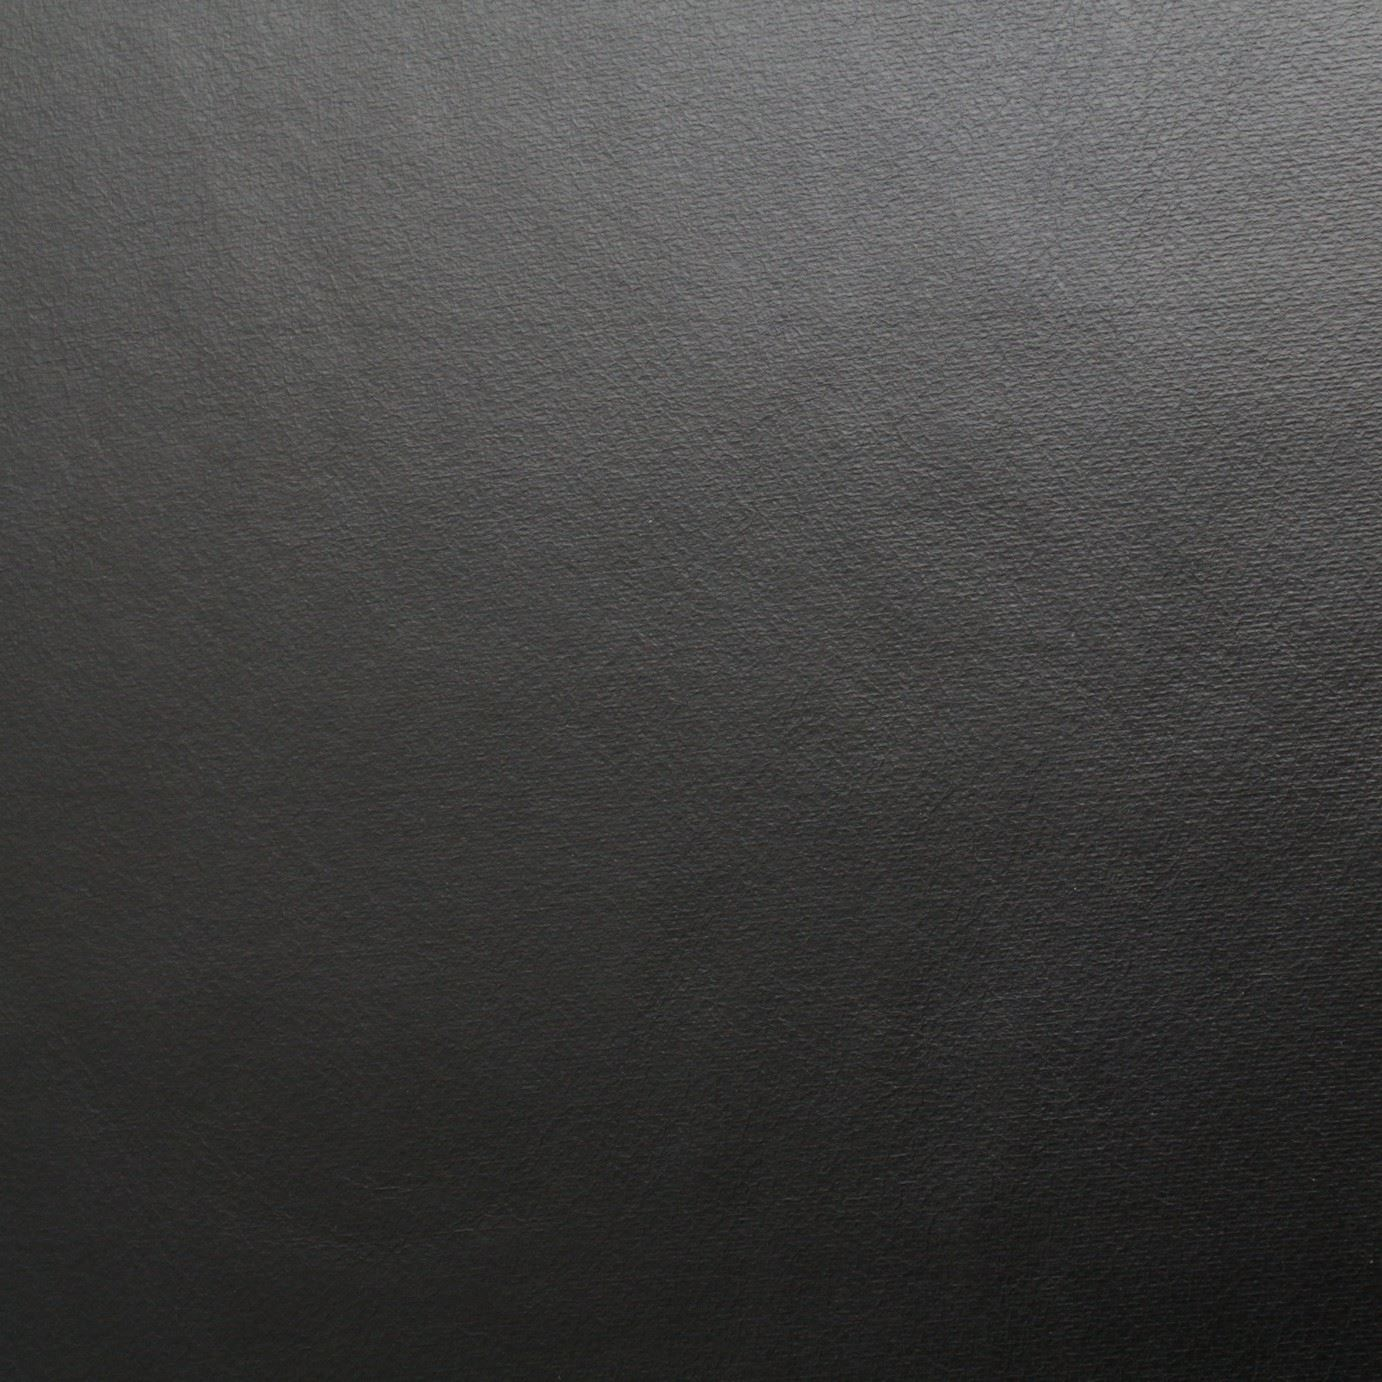 thumbnail 25 - AGED BROWN DISTRESSED ANTIQUED SUEDE FAUX LEATHER LEATHERETTE UPHOLSTERY FABRIC